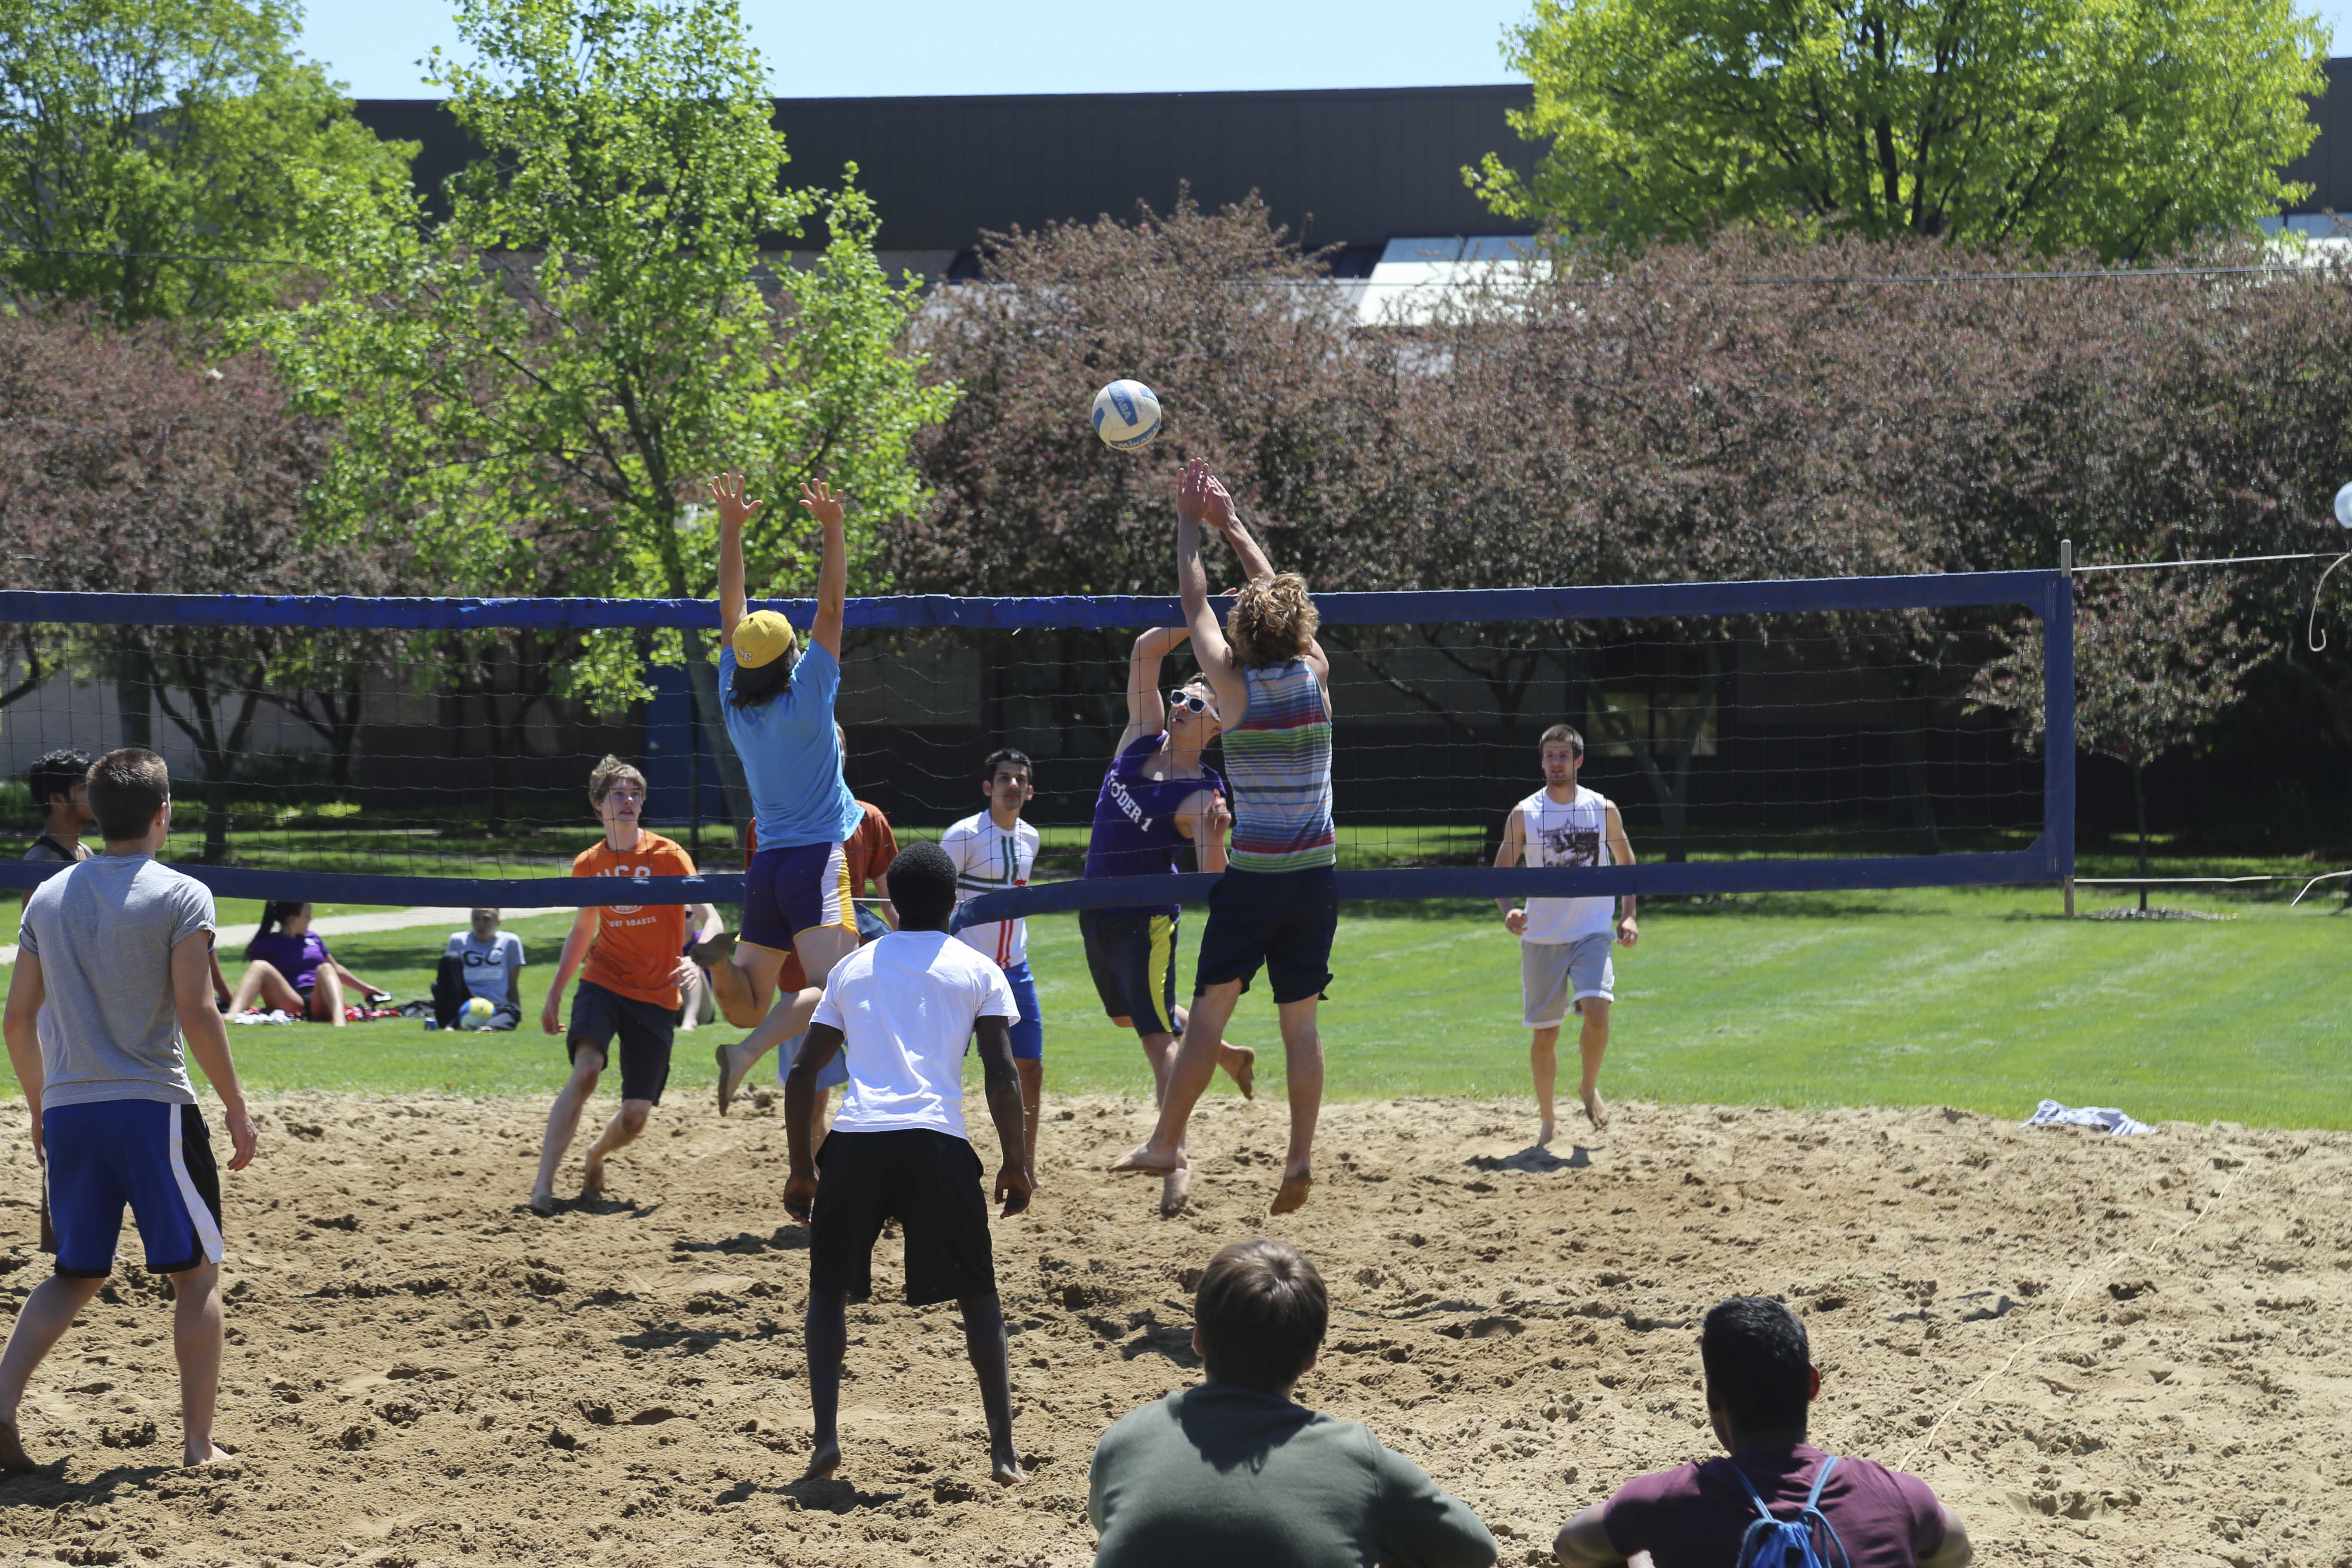 Fall Leave Wallpaper Student Life Sand Volleyball Tournament And Picnic